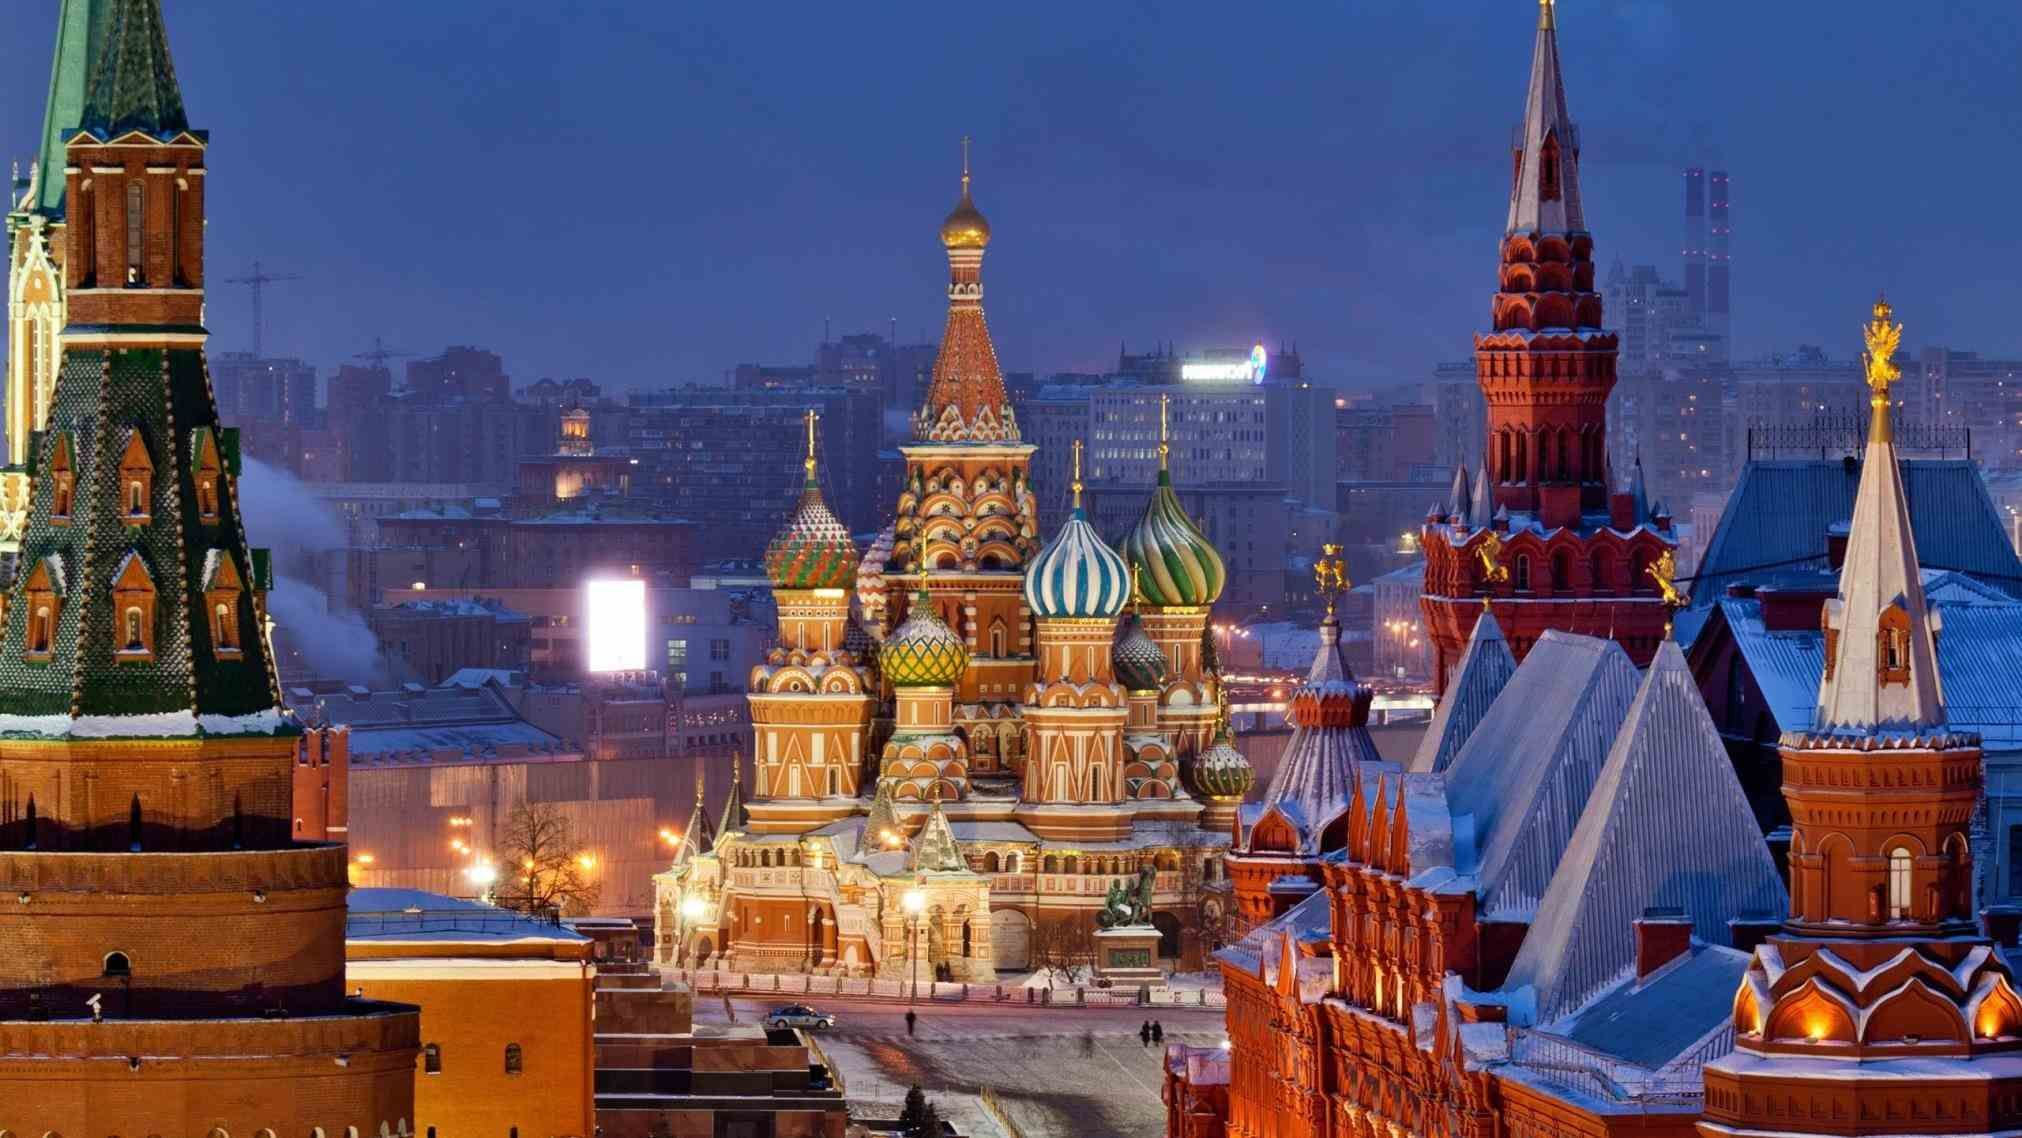 winter wallpaper red square squares red moscow russia in winter square  squares wter holidays hd desktop wallpaper red moscow … | Russia tours,  Russia, Moscow russia